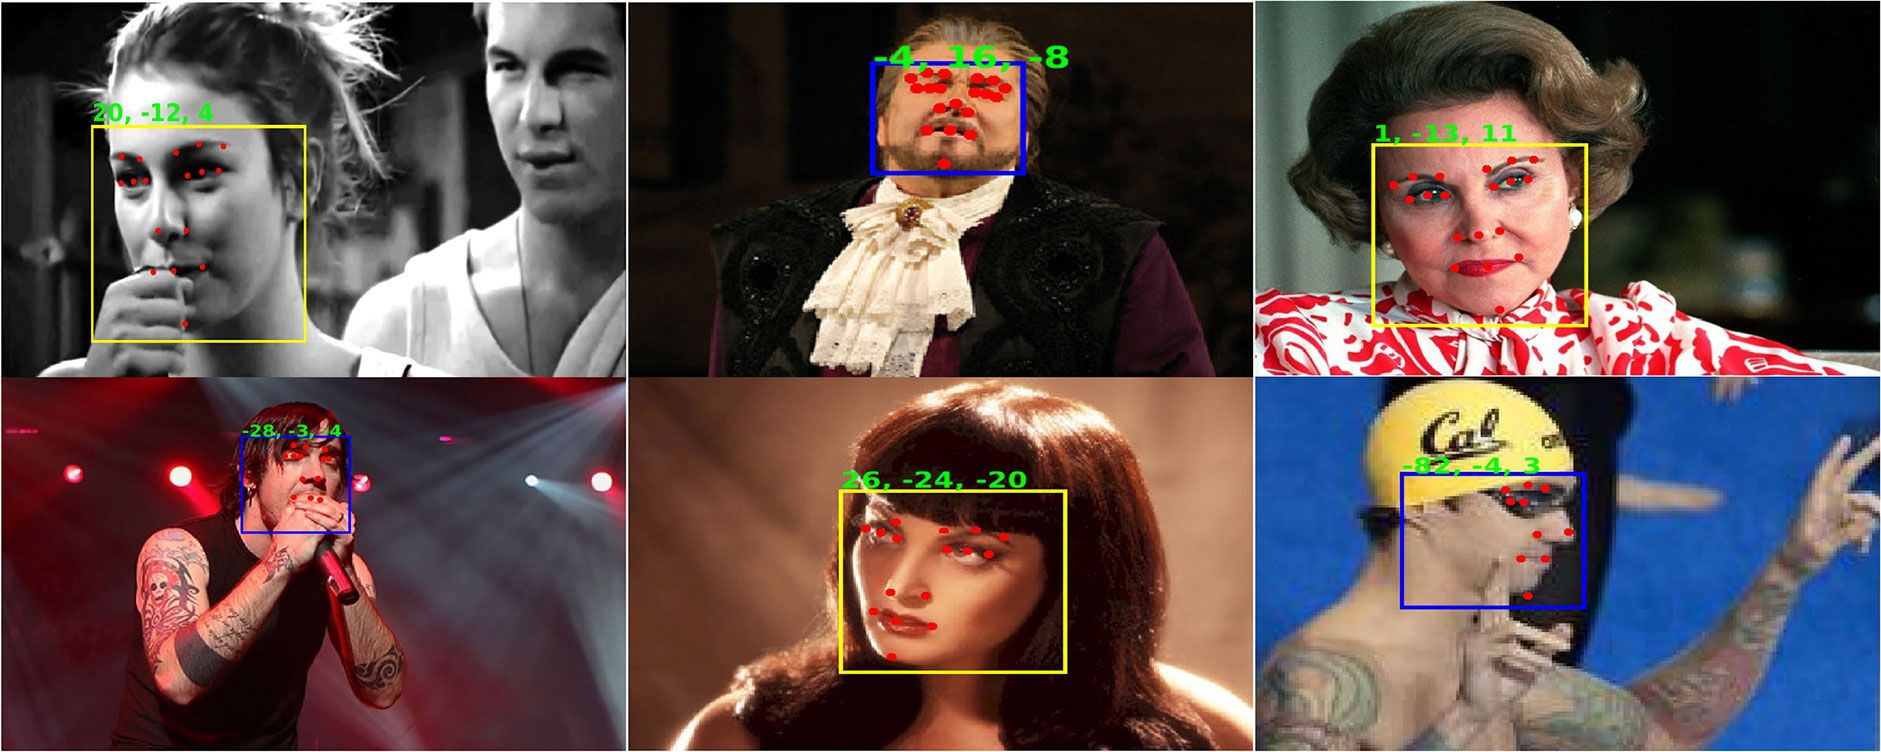 /5-million-face-images-for-facial-recognition-model-training-295v3zup feature image